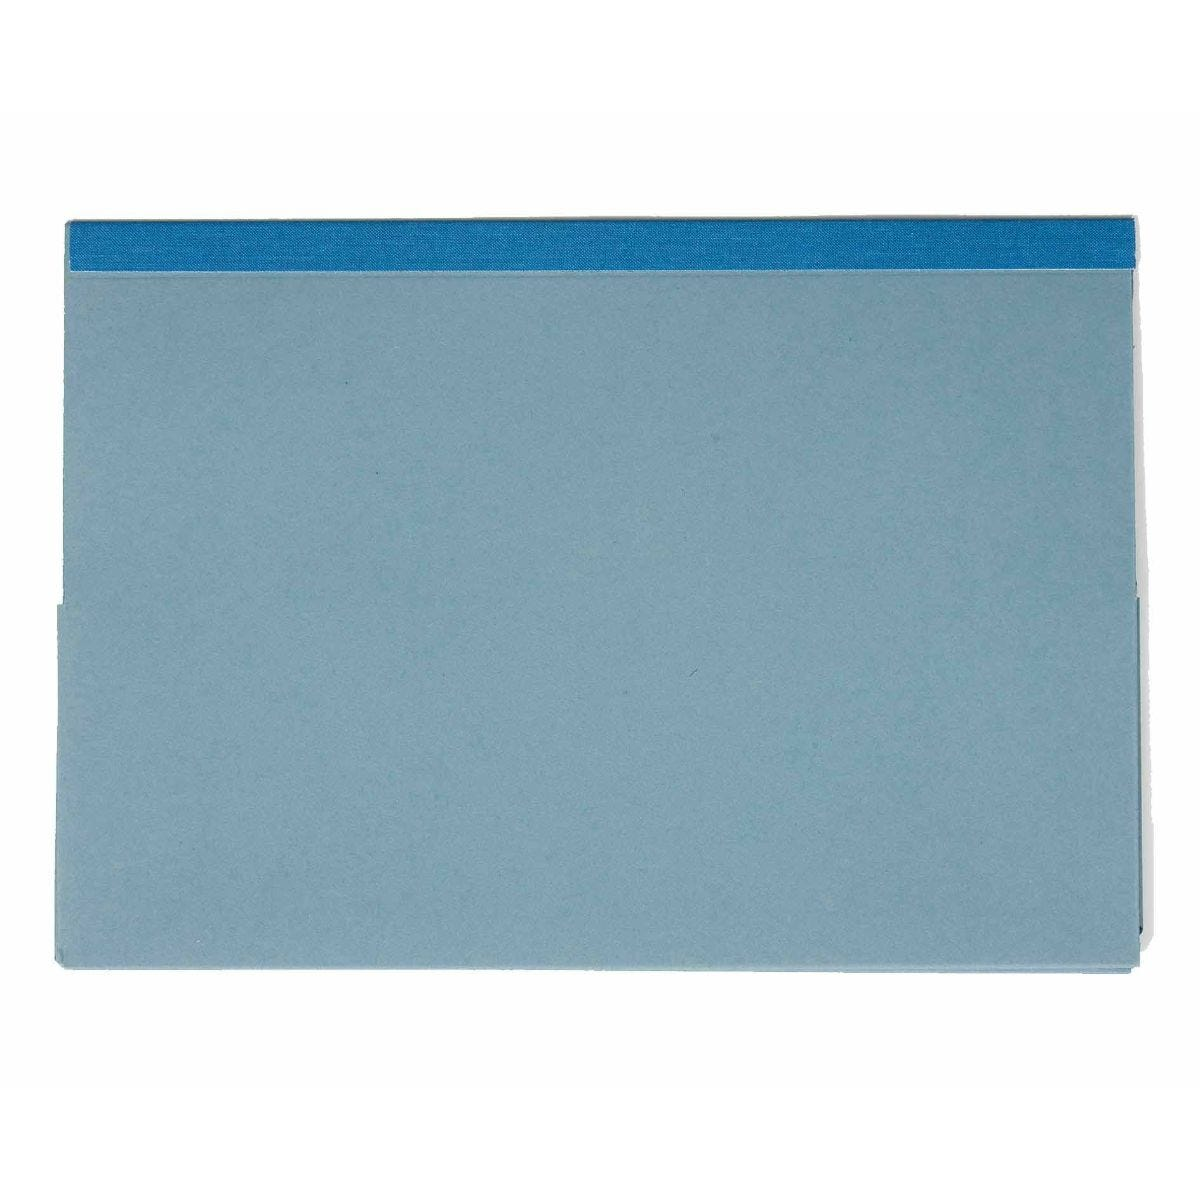 Exacompta Guildhall Reinforced Double Pocket Wallets Foolscap Pack of 25 315gsm Blue